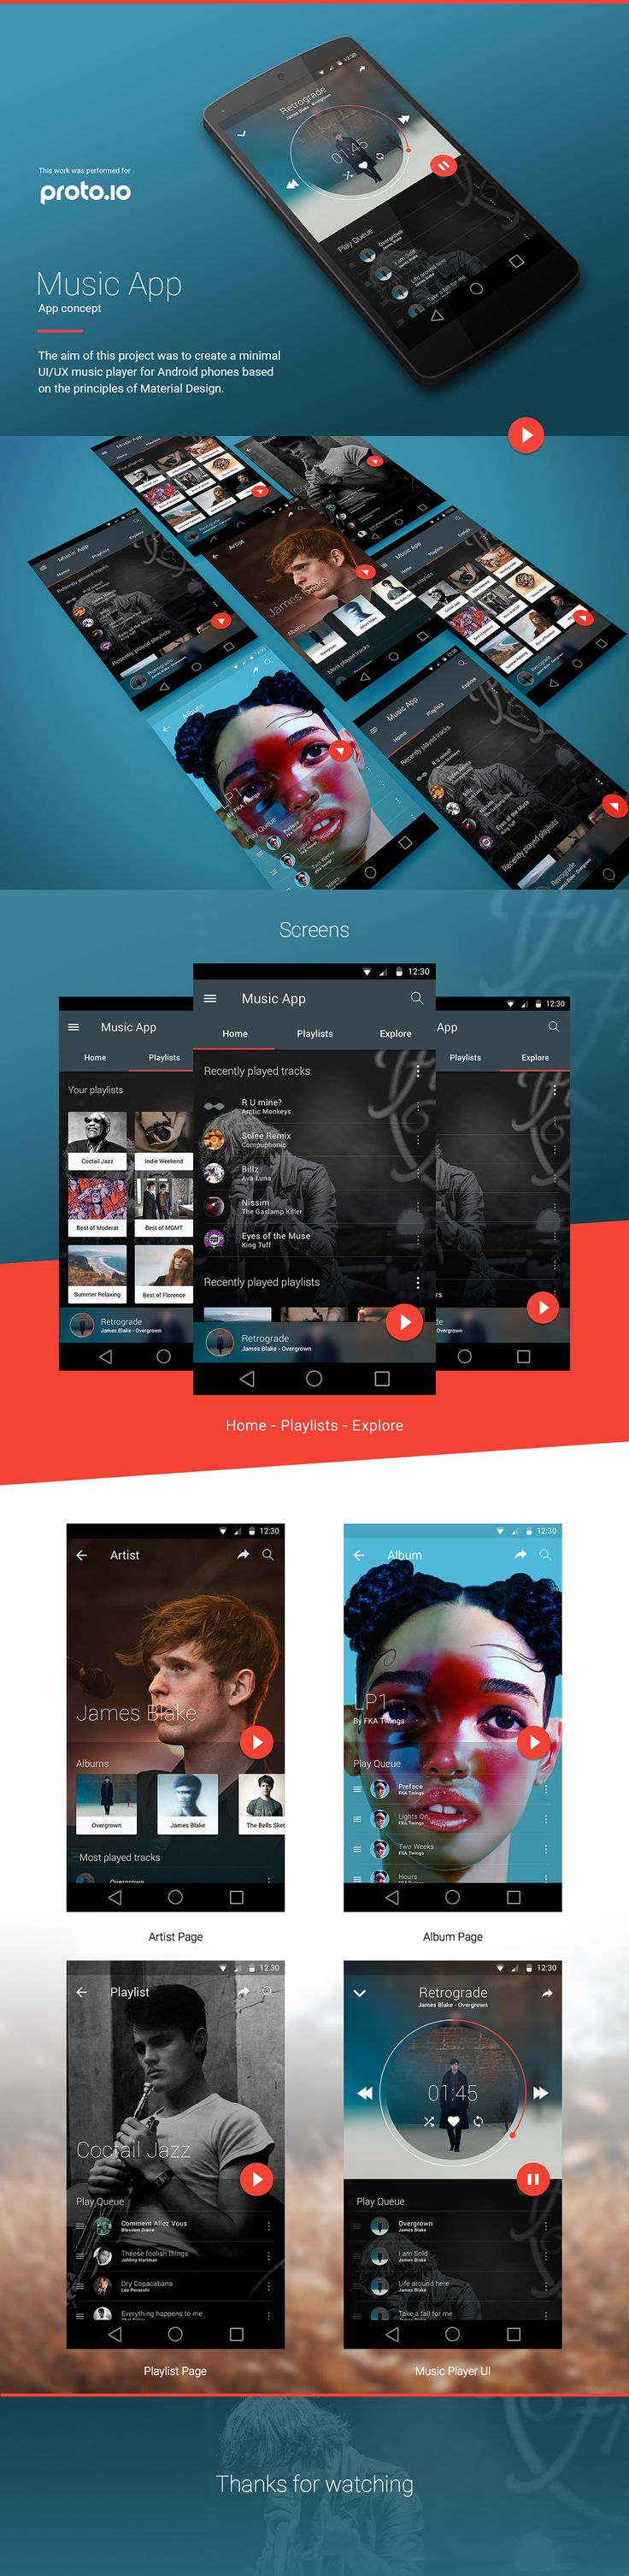 Music App | Material Design on App Design Served